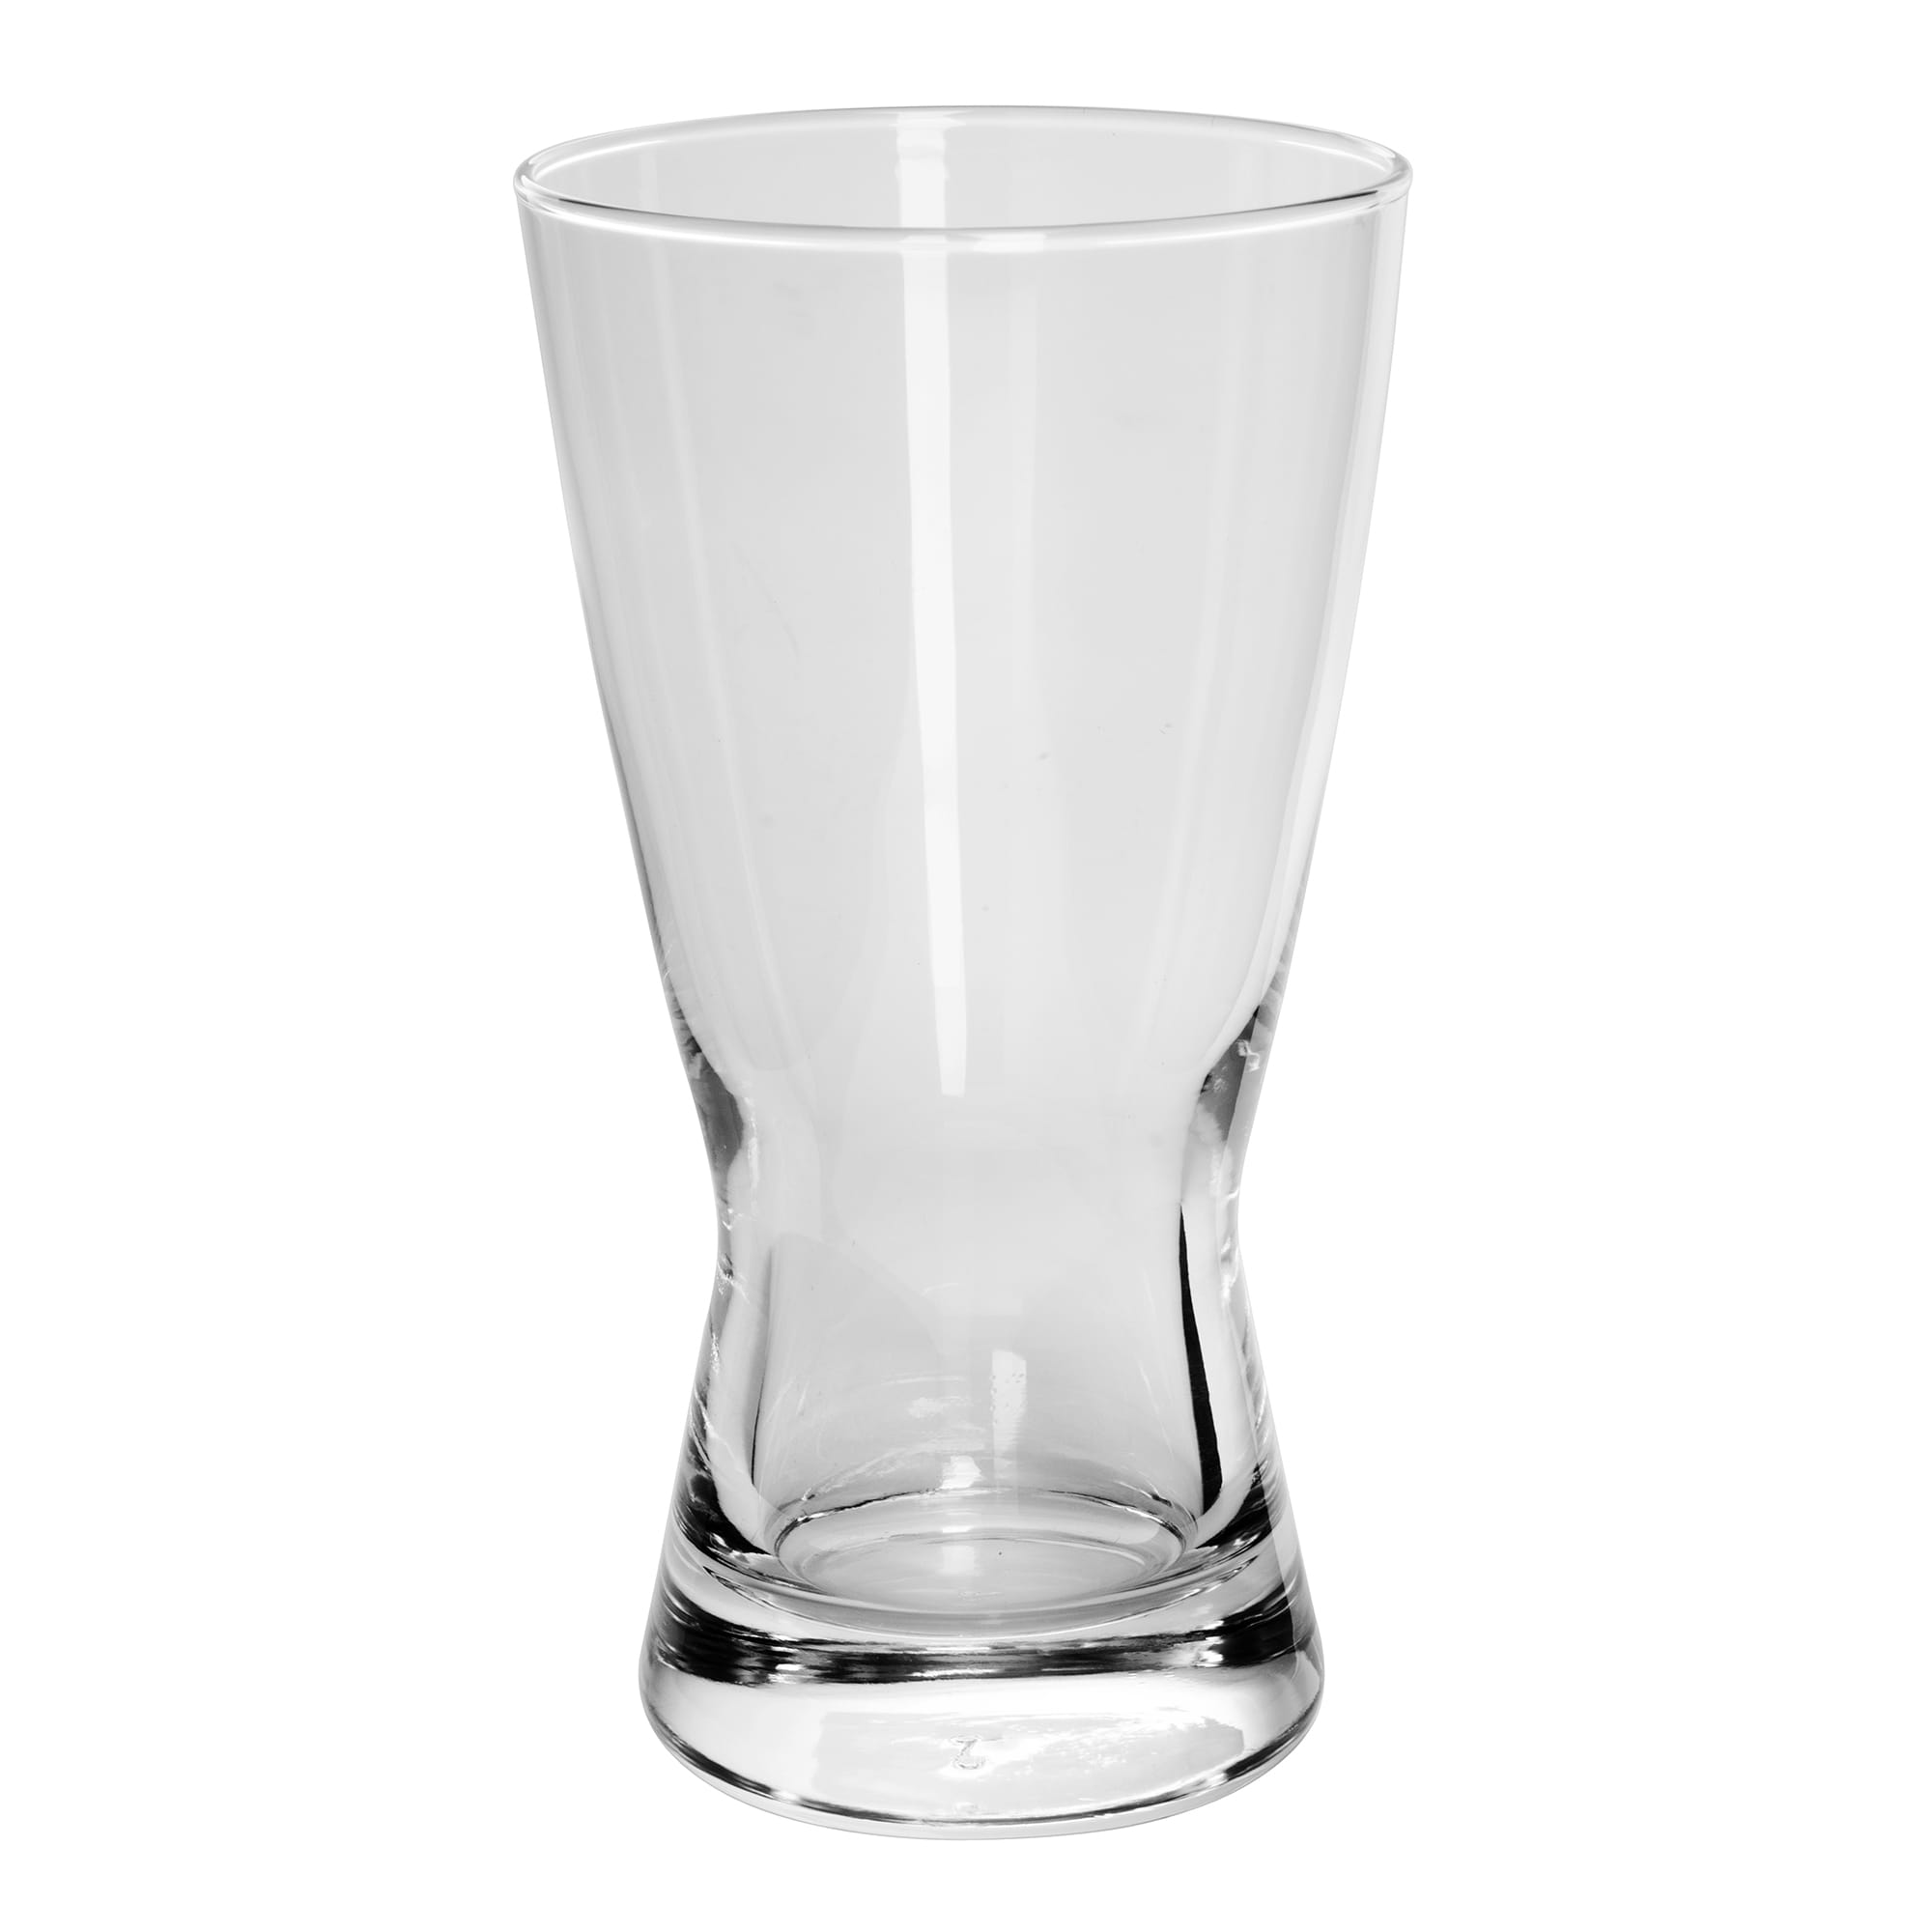 Libbey 181 12-oz Hourglass Design Pilsner Glass - Safedge Rim Guarantee